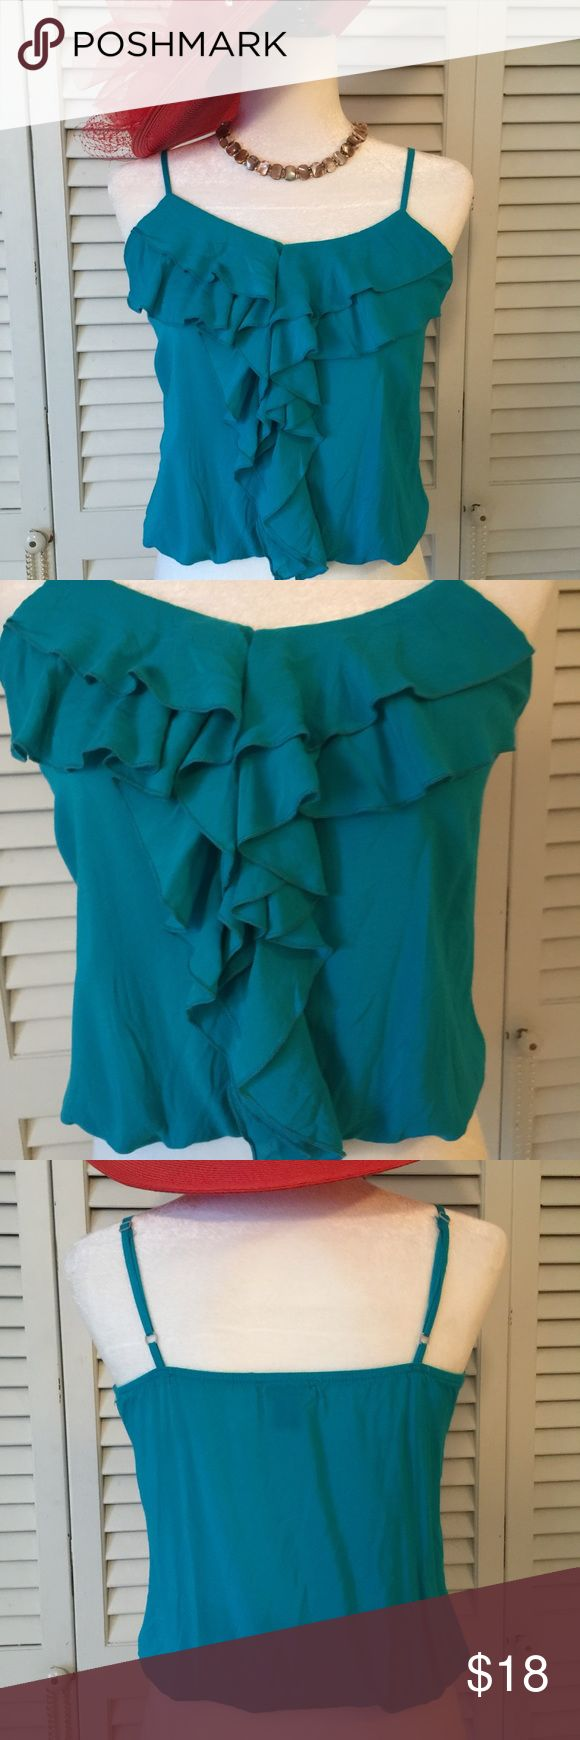 "Body Central strappy Top Size Small Cute little Strappy top with ruffles at beck and down front.  Turquoise color.  Straps are adjustable.  Elastic waist.  Bust is 34"" and length from edge of straps to hem elastic is 18"".  Fabric is 100% rayon. Body Central Tops Crop Tops"